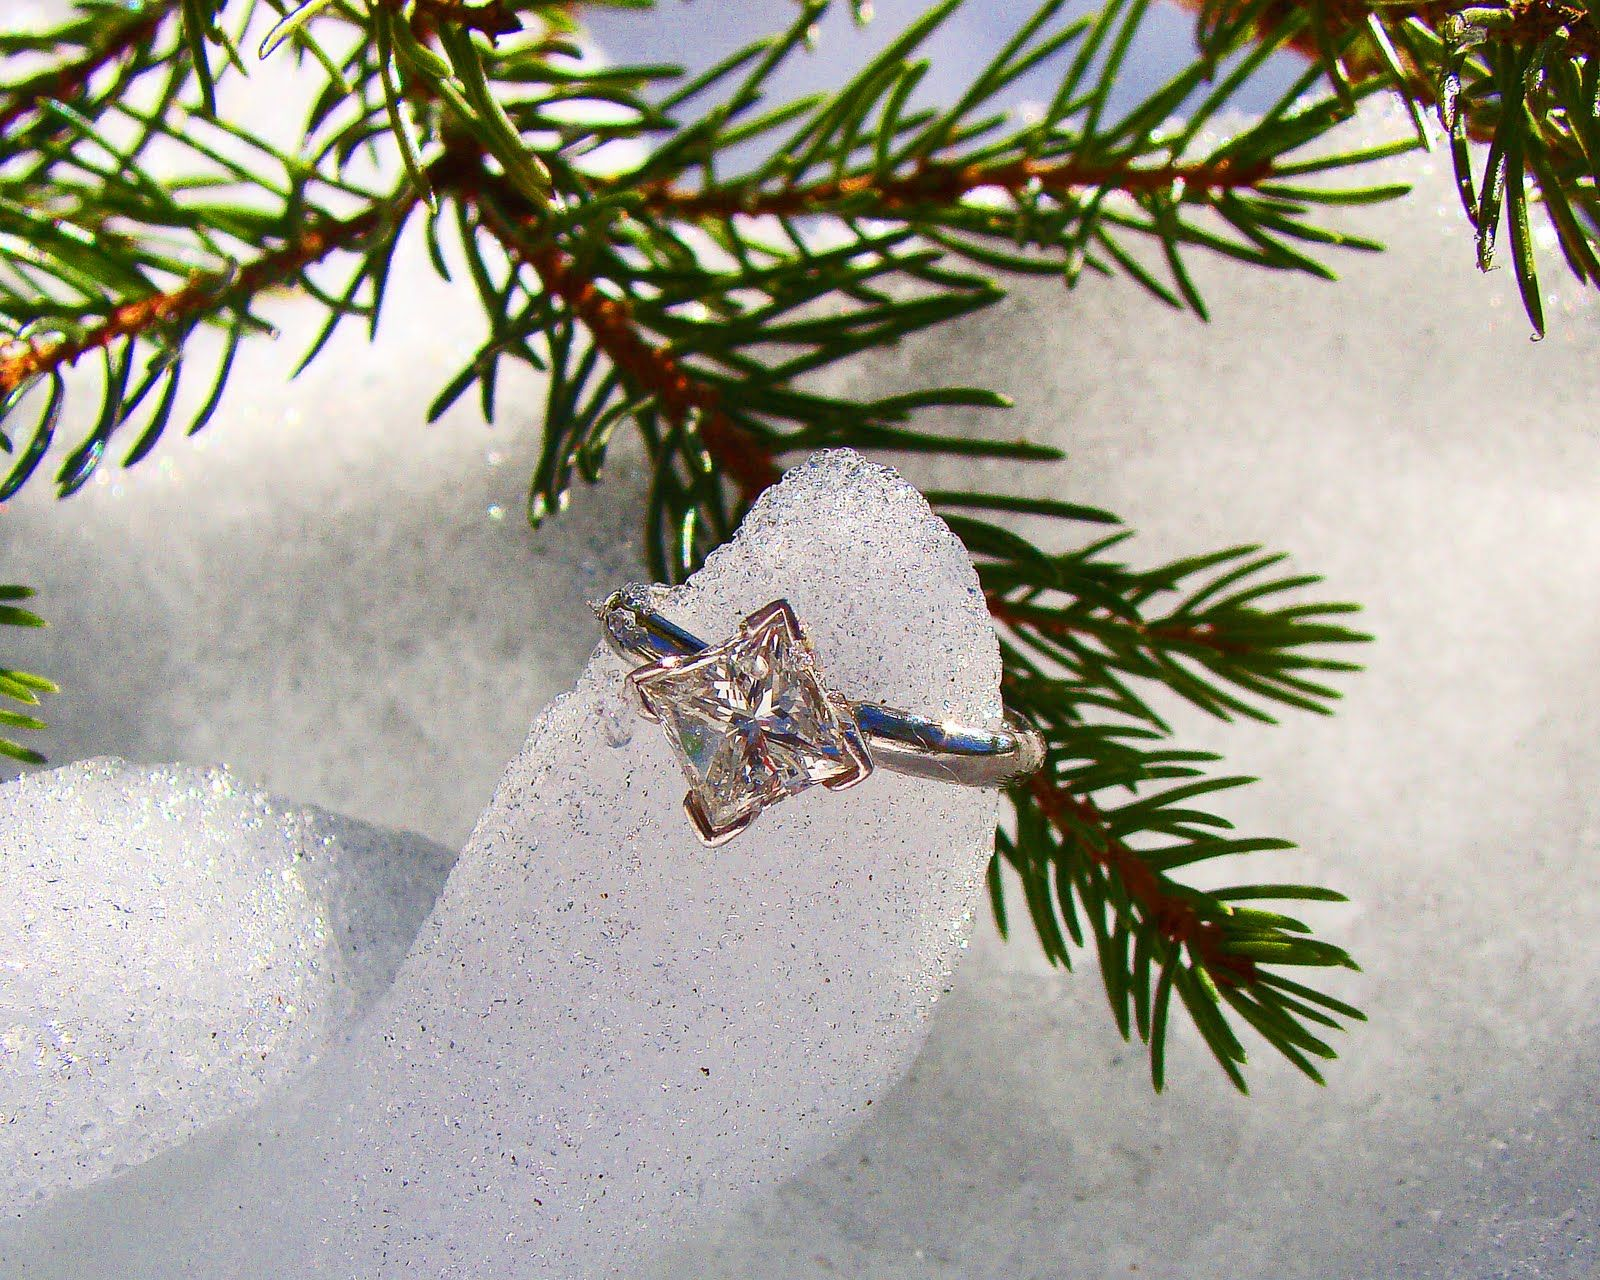 Engagement Ring... I've talked about having one on an angle like this... nice to see it outside of my head!